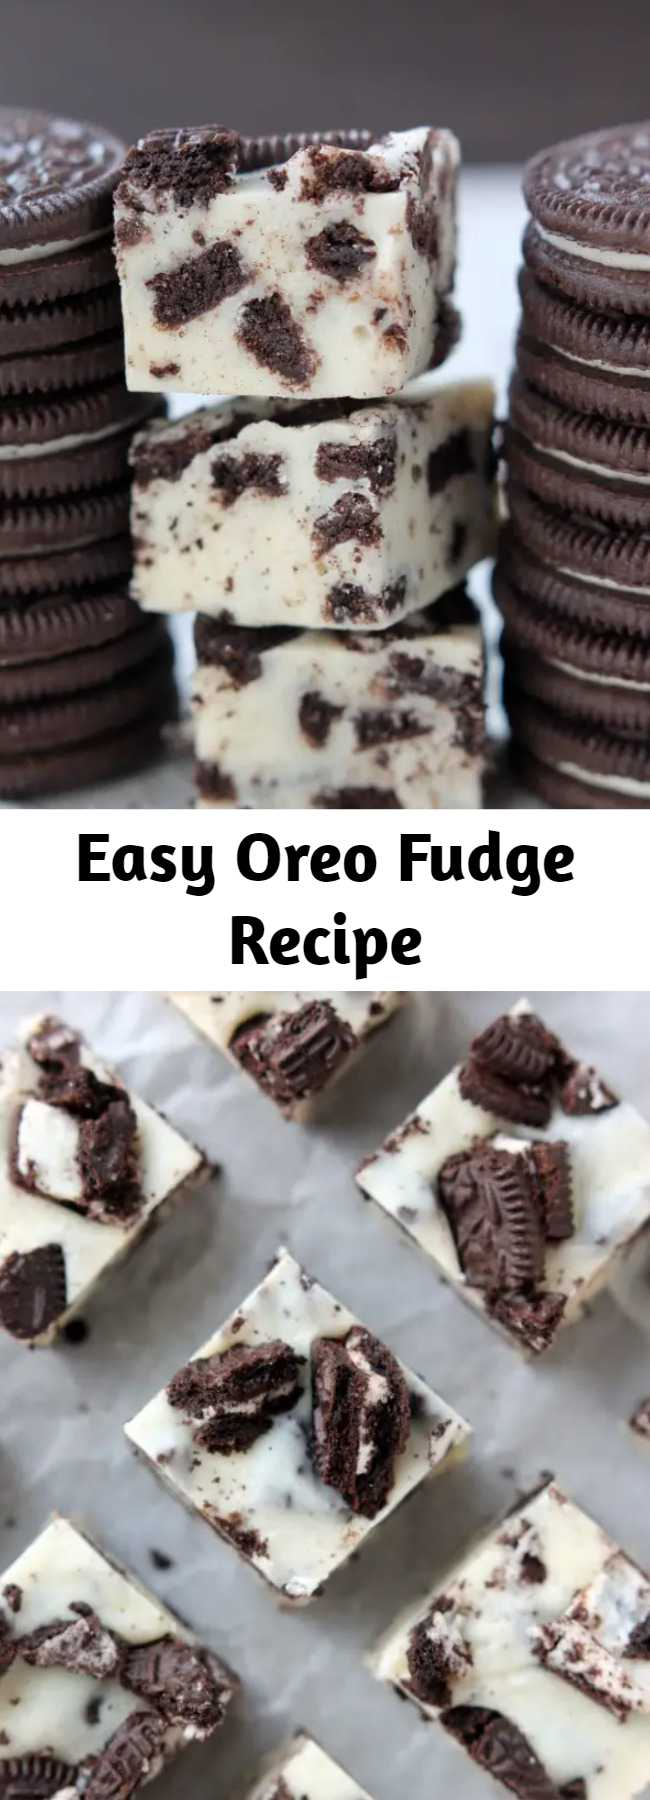 Easy Oreo Fudge Recipe - This Oreo Fudge whips up fast, with only 3 ingredients! Perfect for Christmas neighbor plates!